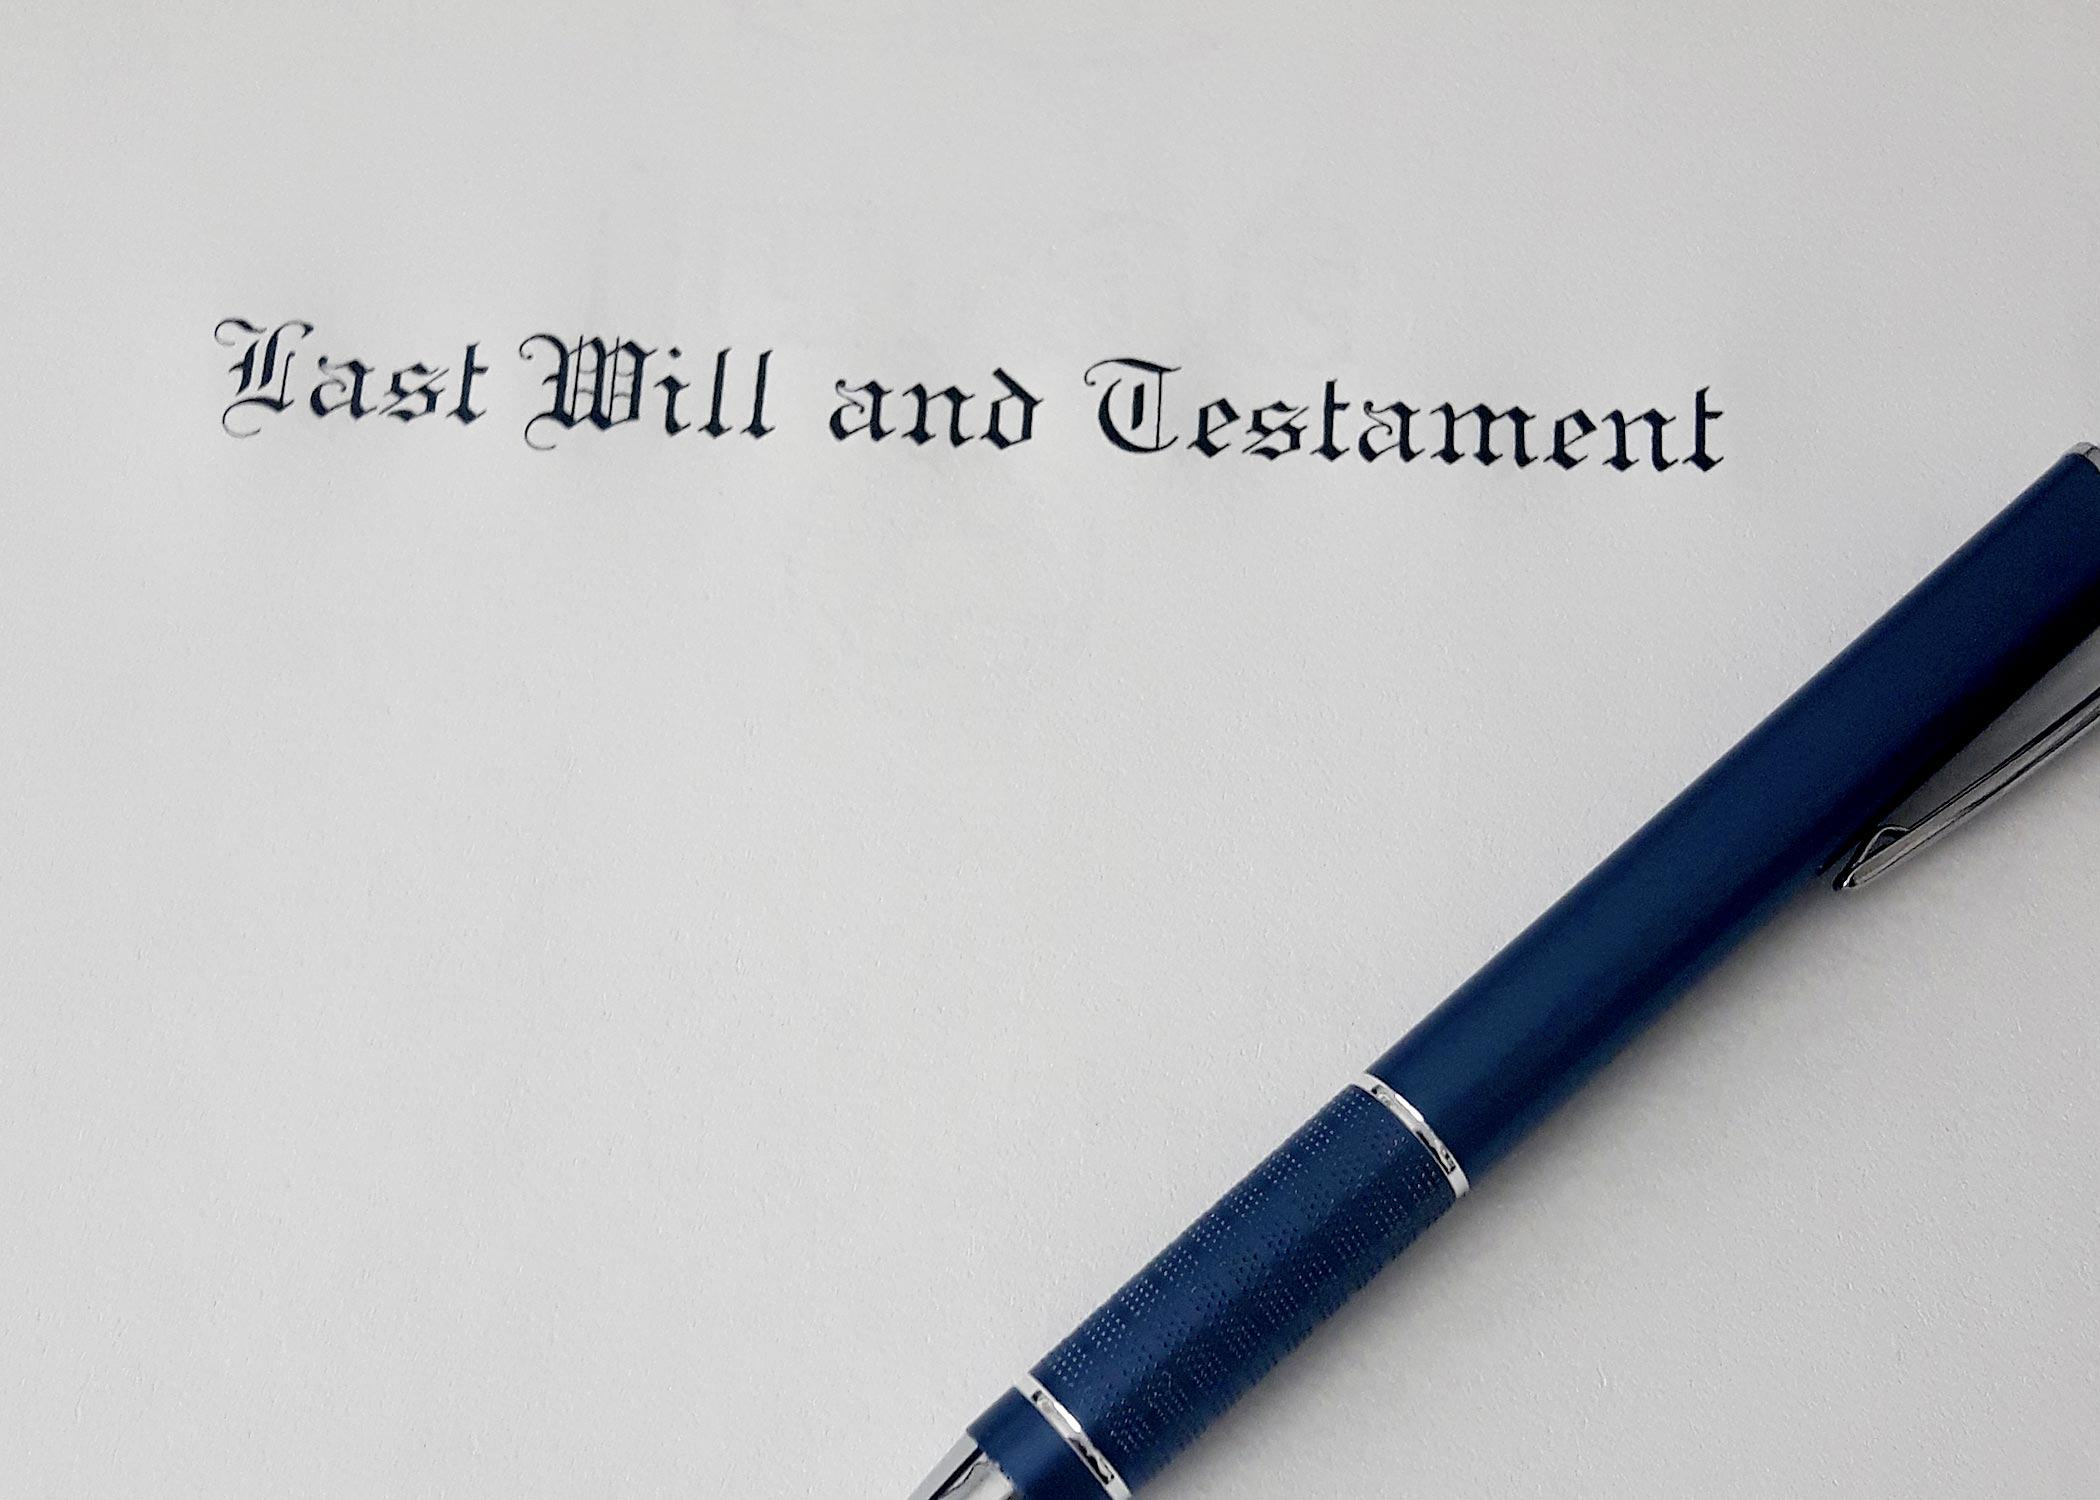 Wills and Estate Law - Lawyer in Timmins | EEGP Law